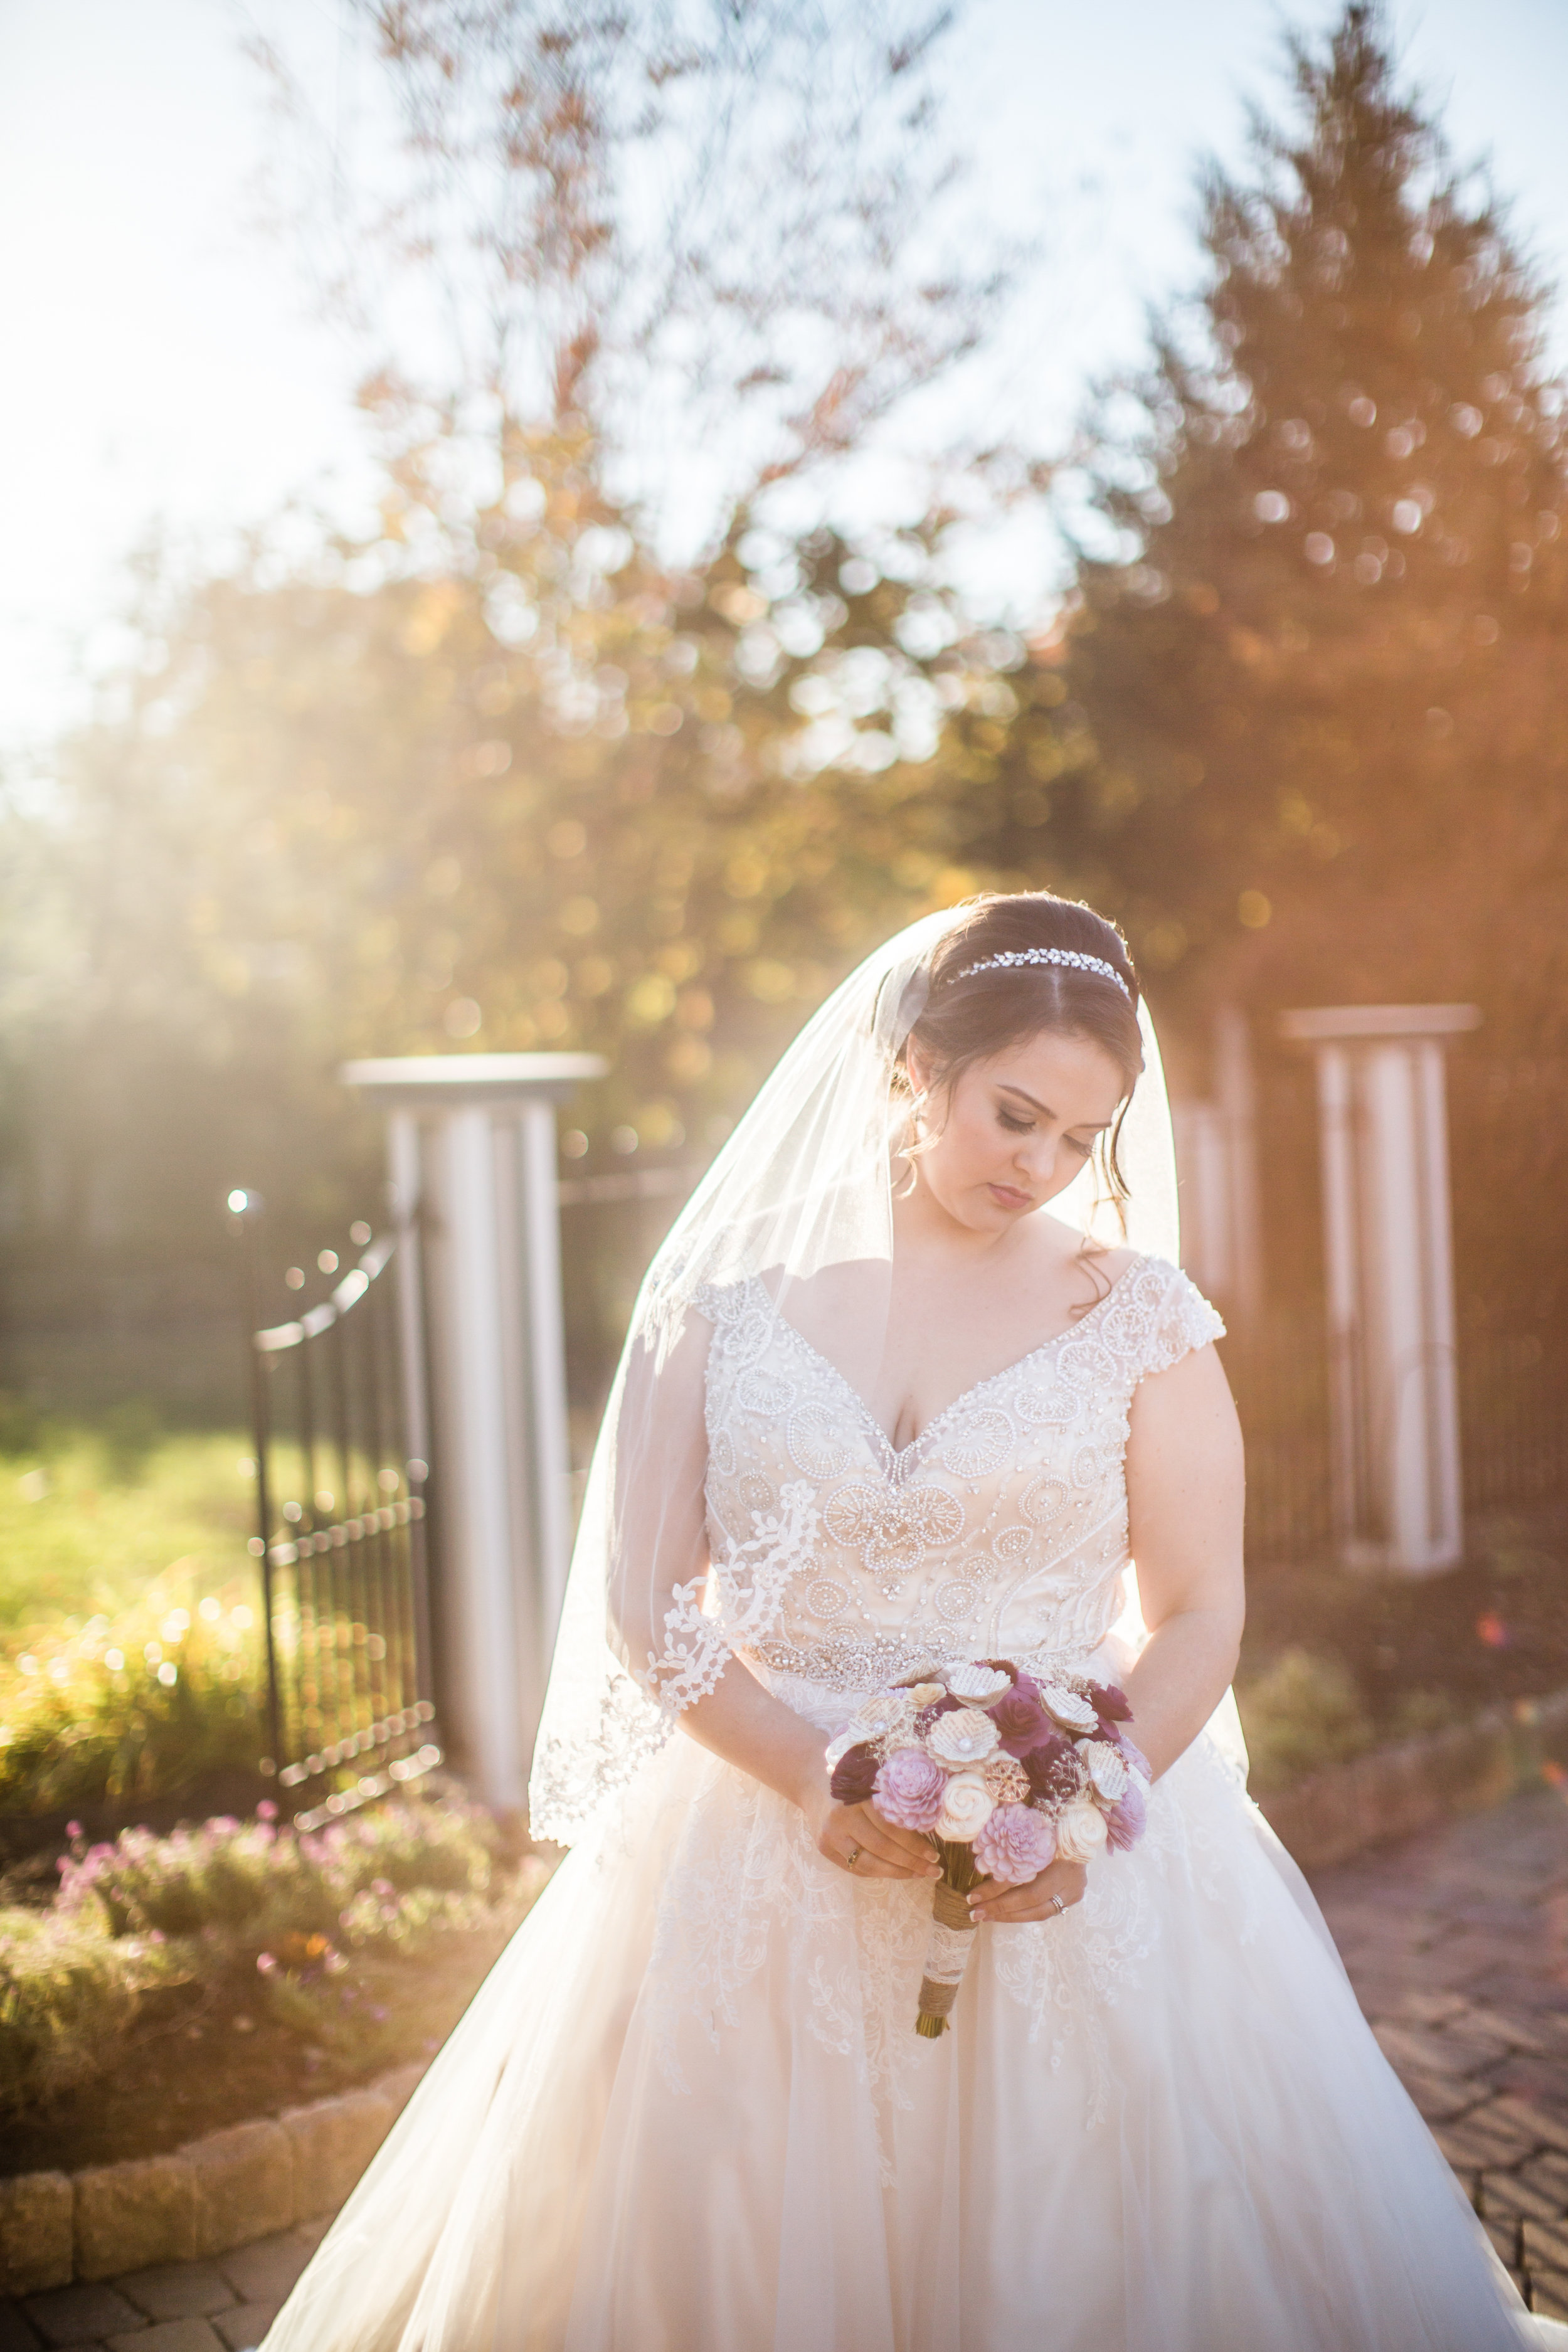 scotlandrunweddingfallsouthjerseyweddingphotographer-14.jpg